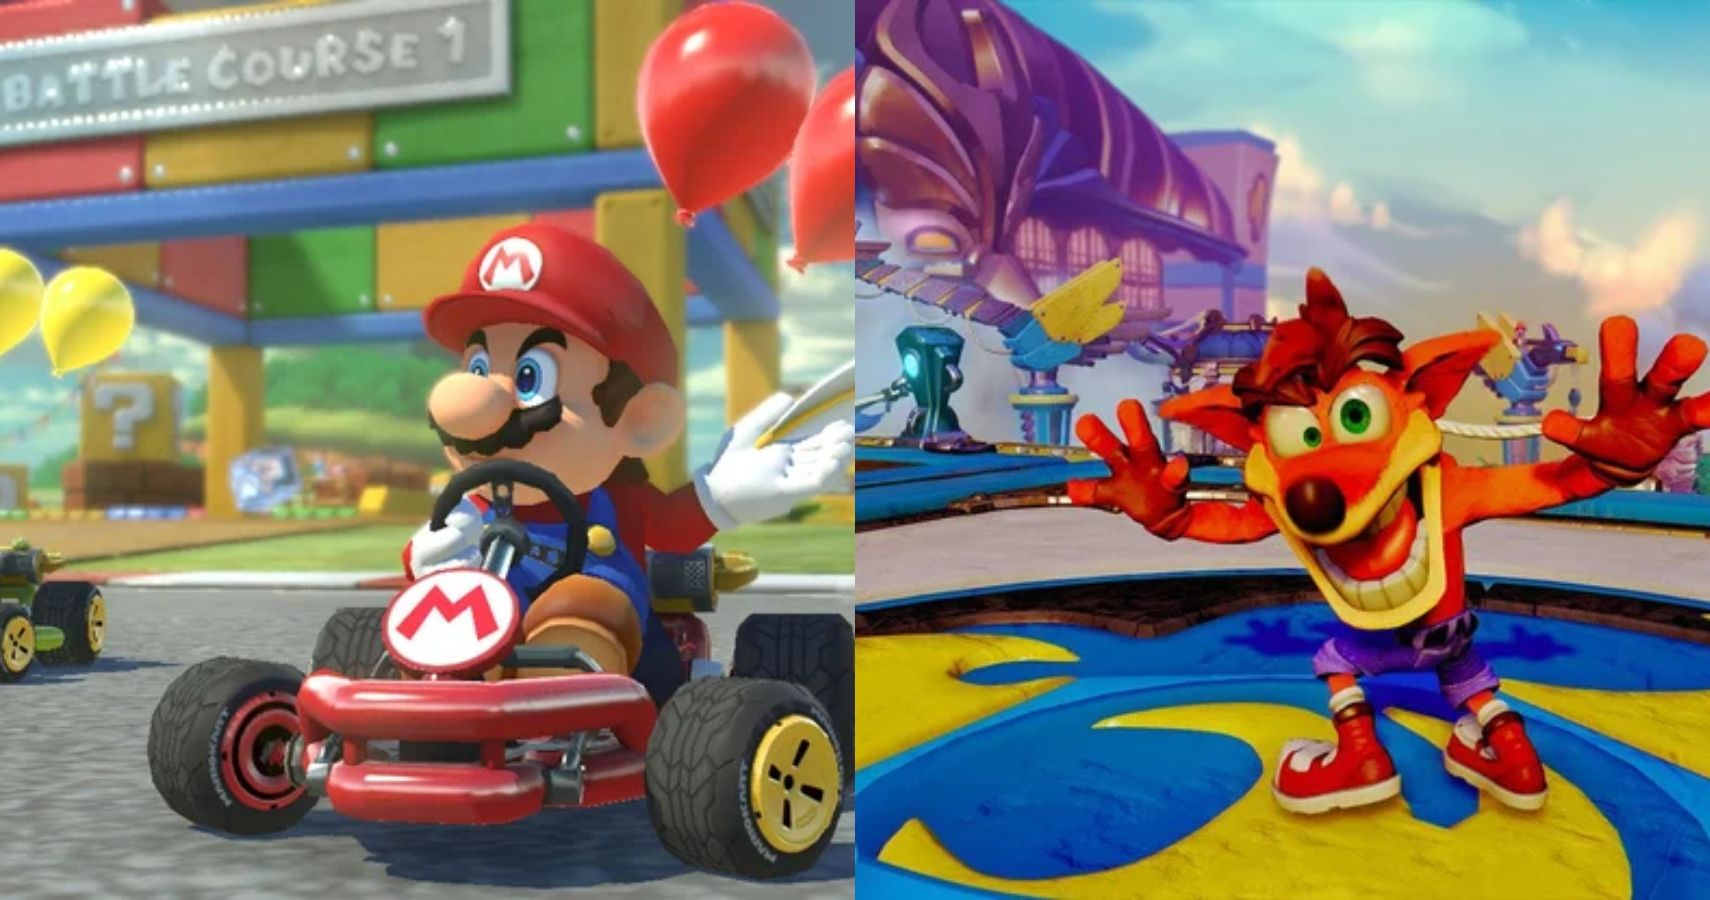 10 Games With The Most Cheat Codes What They Get You